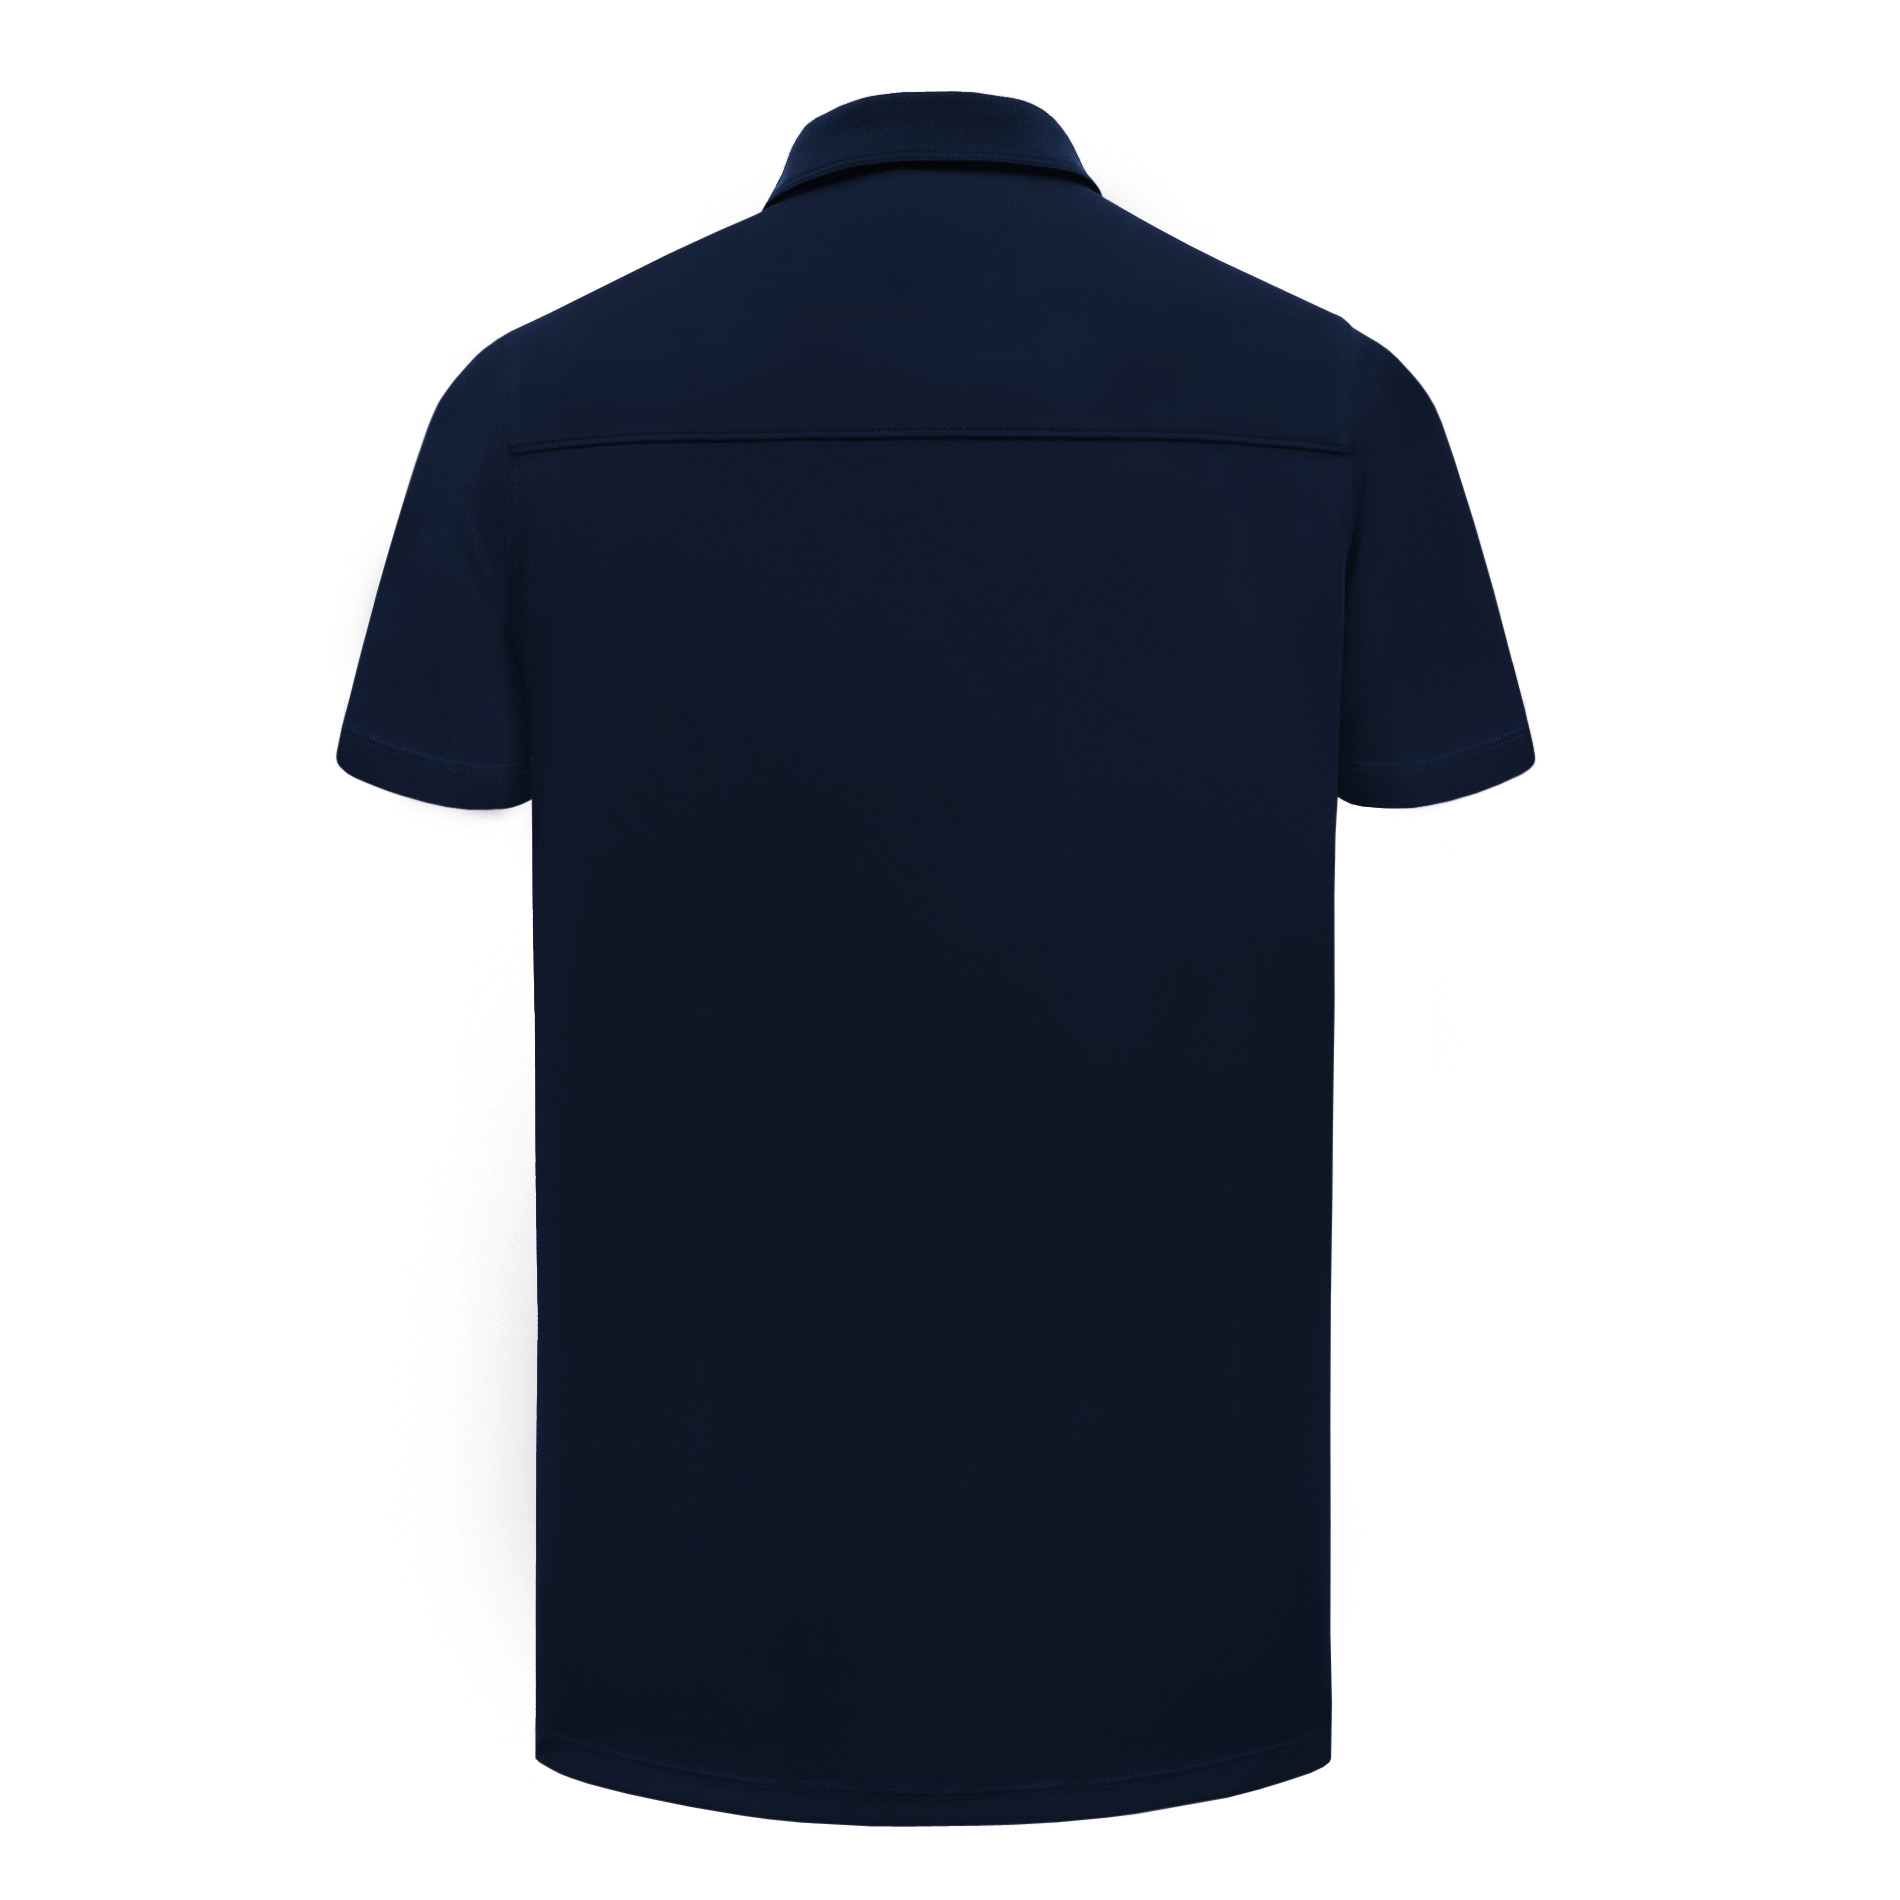 Index of /image/cache/data/Produk/Golf Shirt/05 SwingDry